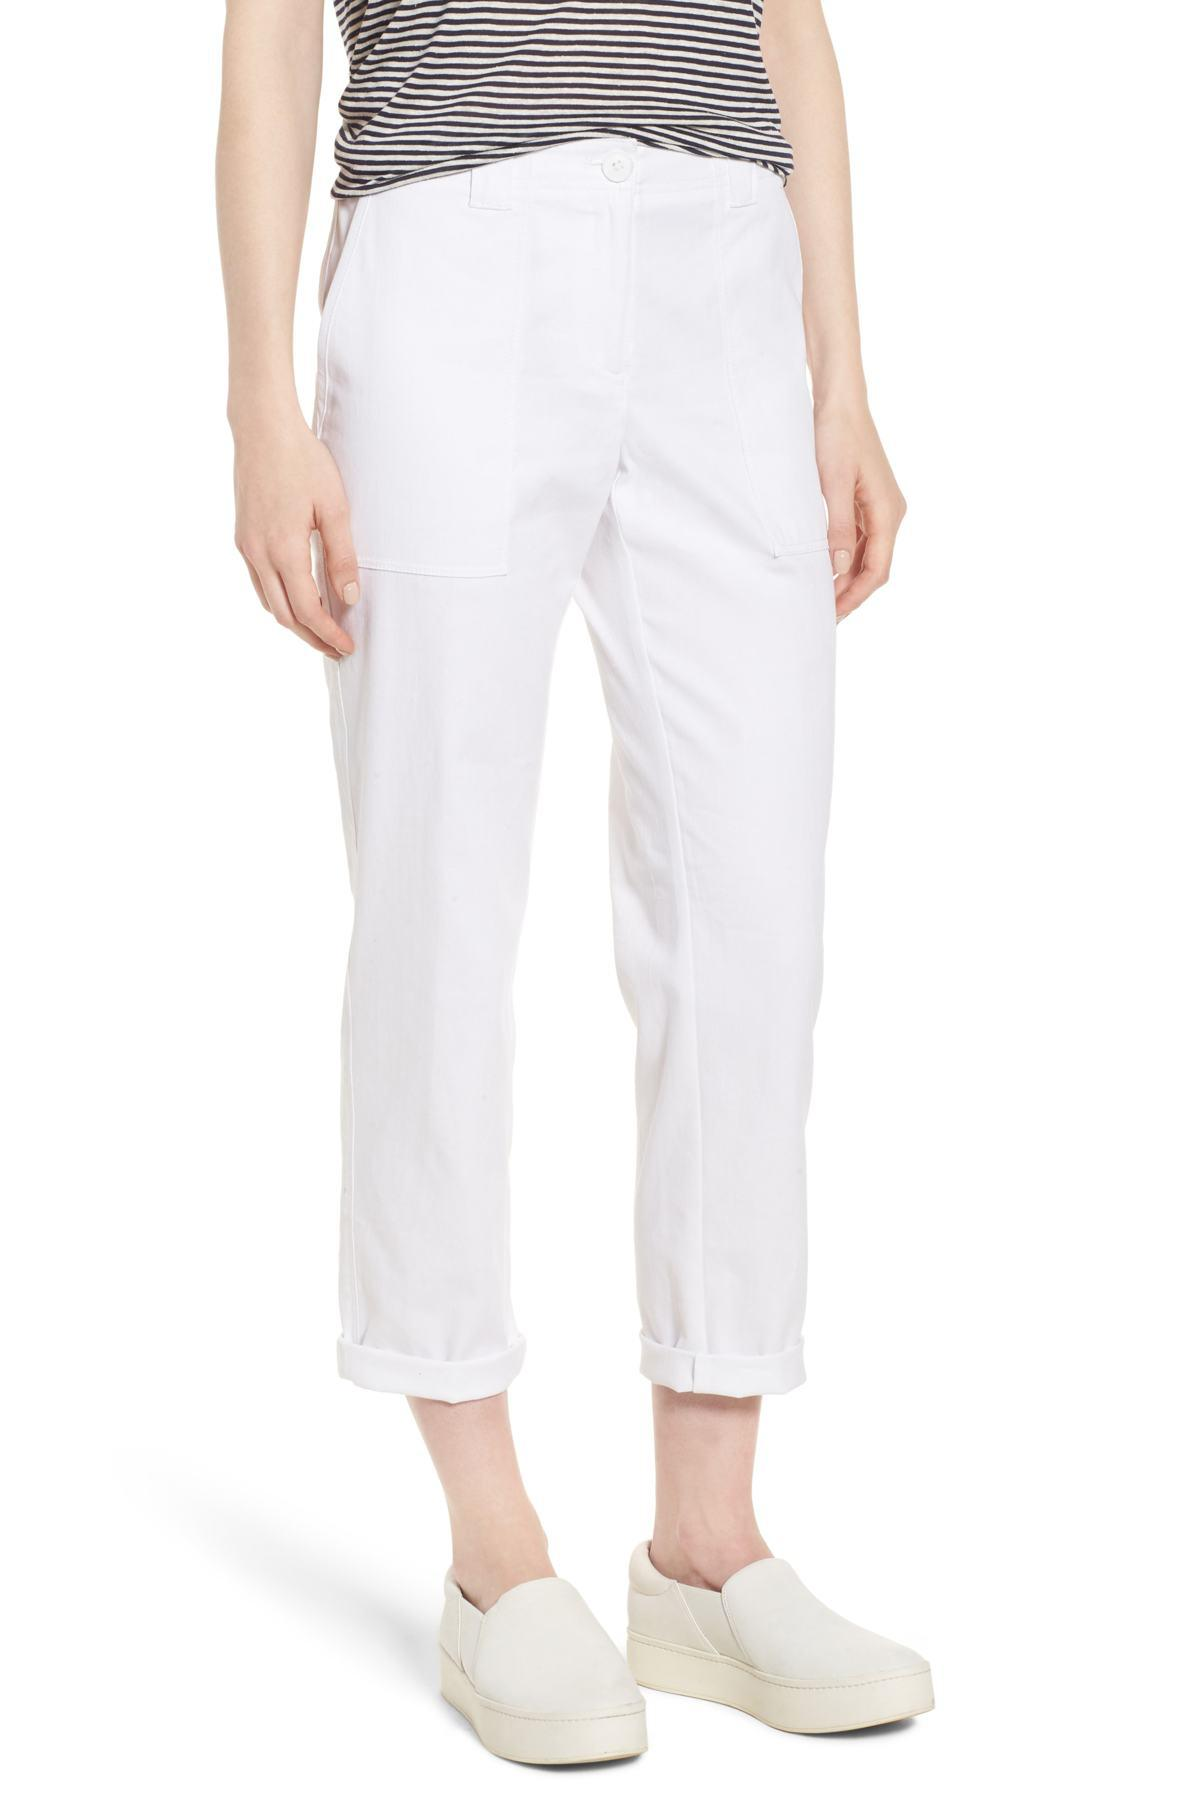 fcebc921216 Lyst - Nordstrom Stretch Cotton   Linen Ankle Pants in White - Save ...